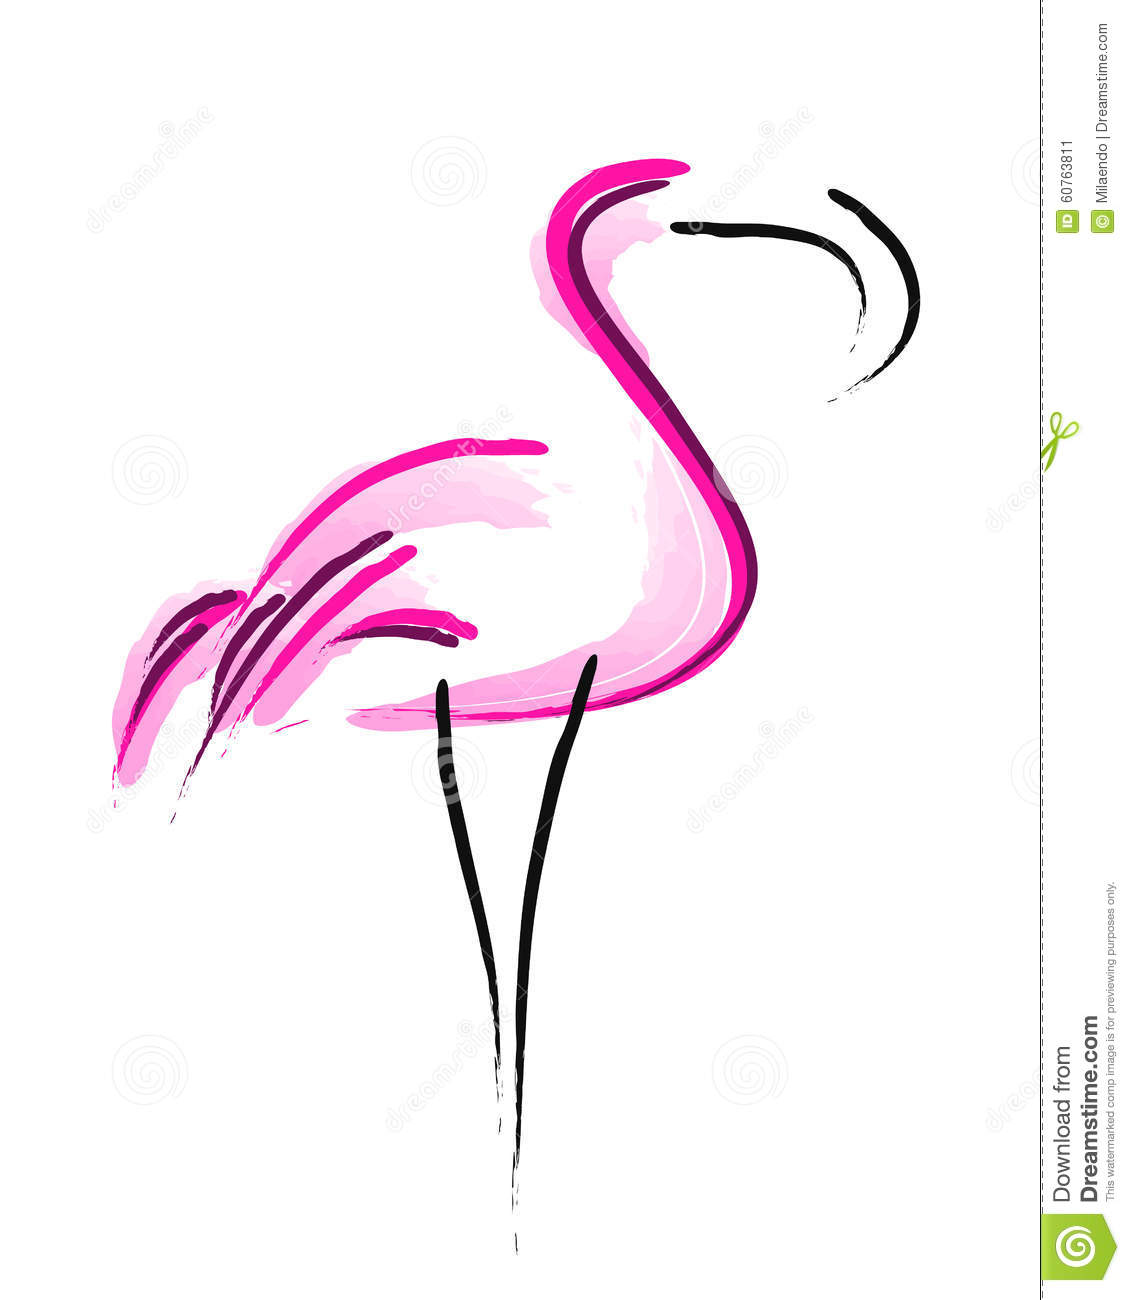 Stock Illustration Flamingos Simple Symbol Image Bird Lines Image Pink Flamingo Vector White Background Image60763811 on cartoon foot